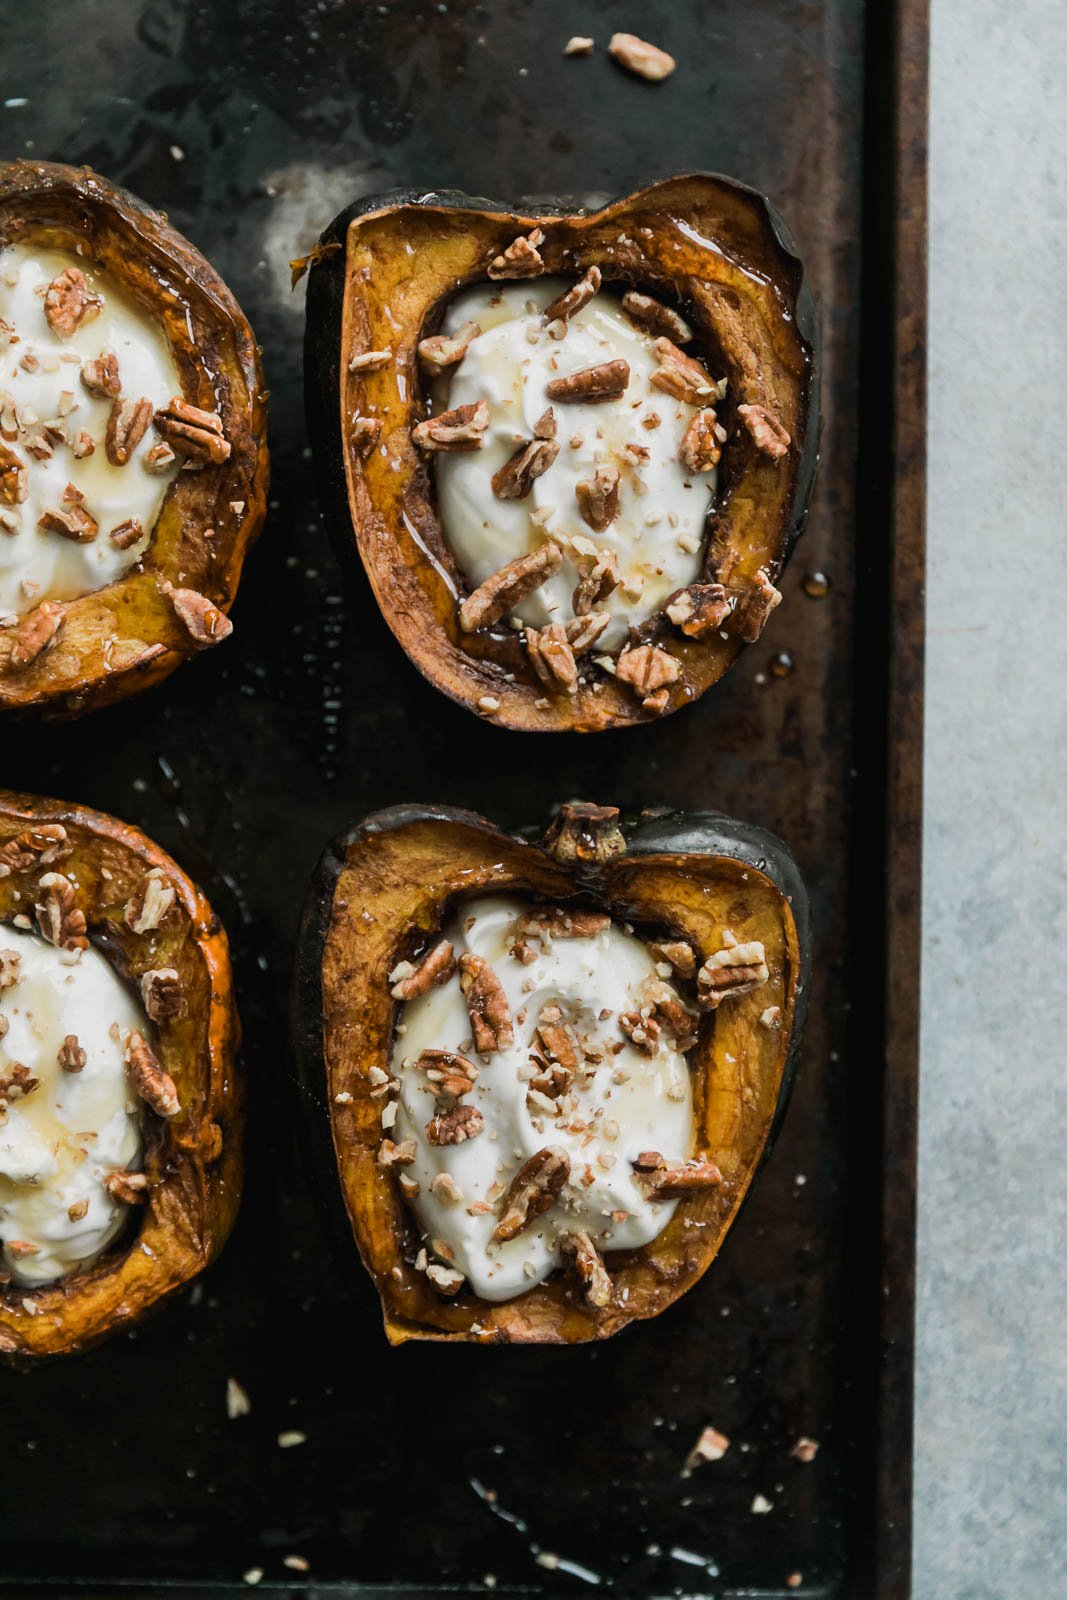 breakfast acorn squash stuffed with yogurt and pecans on a baking tray